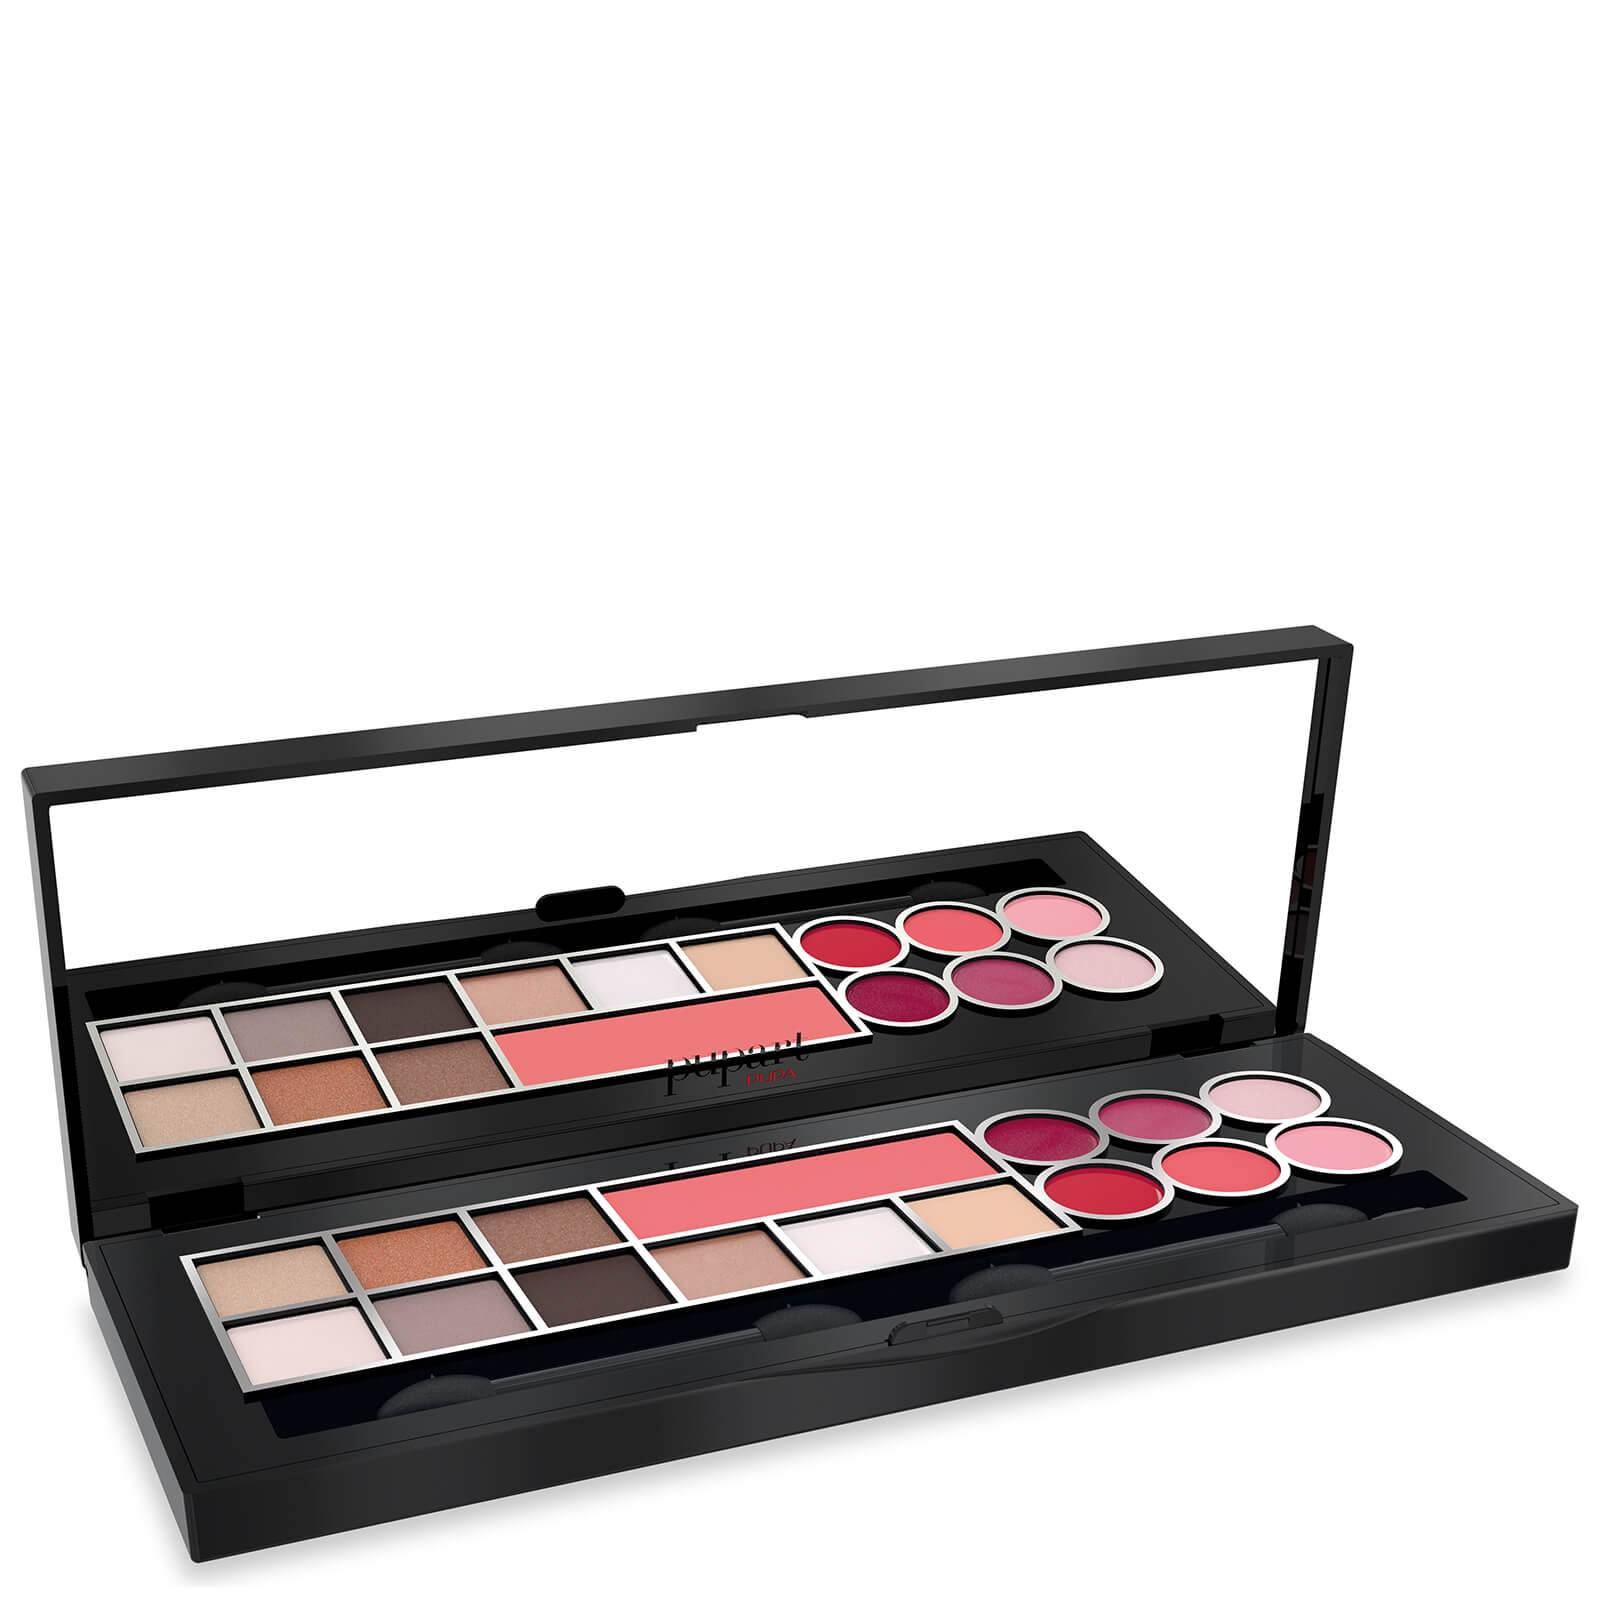 Pupa rt palette make-up cofanetto rosso - Warm Shades